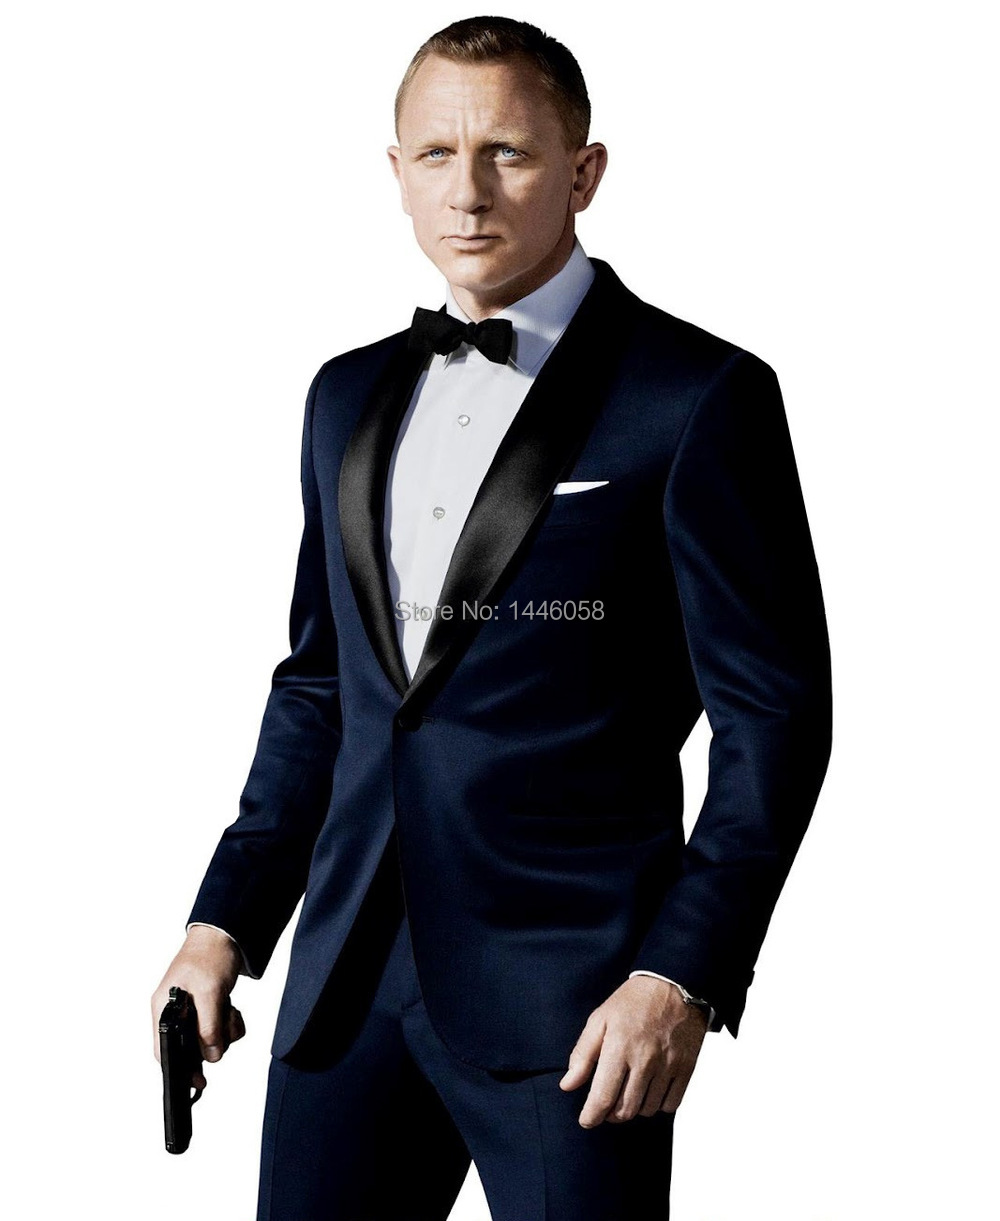 Custom Made Dark Blue Suit Inspired By Suit Worn In James Bond Wedding Suit For Men Groo ...